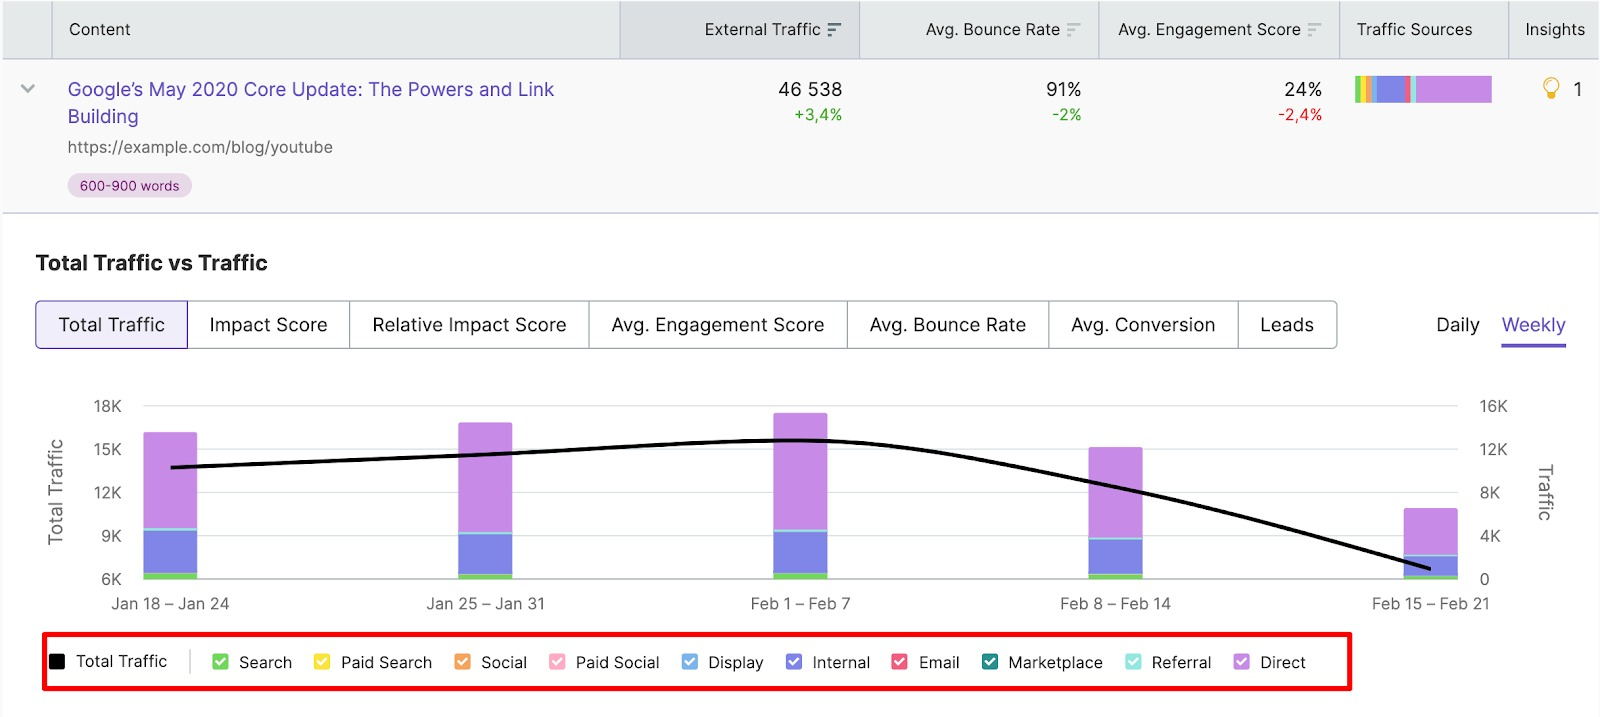 Analyzing and Measuring Content Performance by Funnel Stages image 4